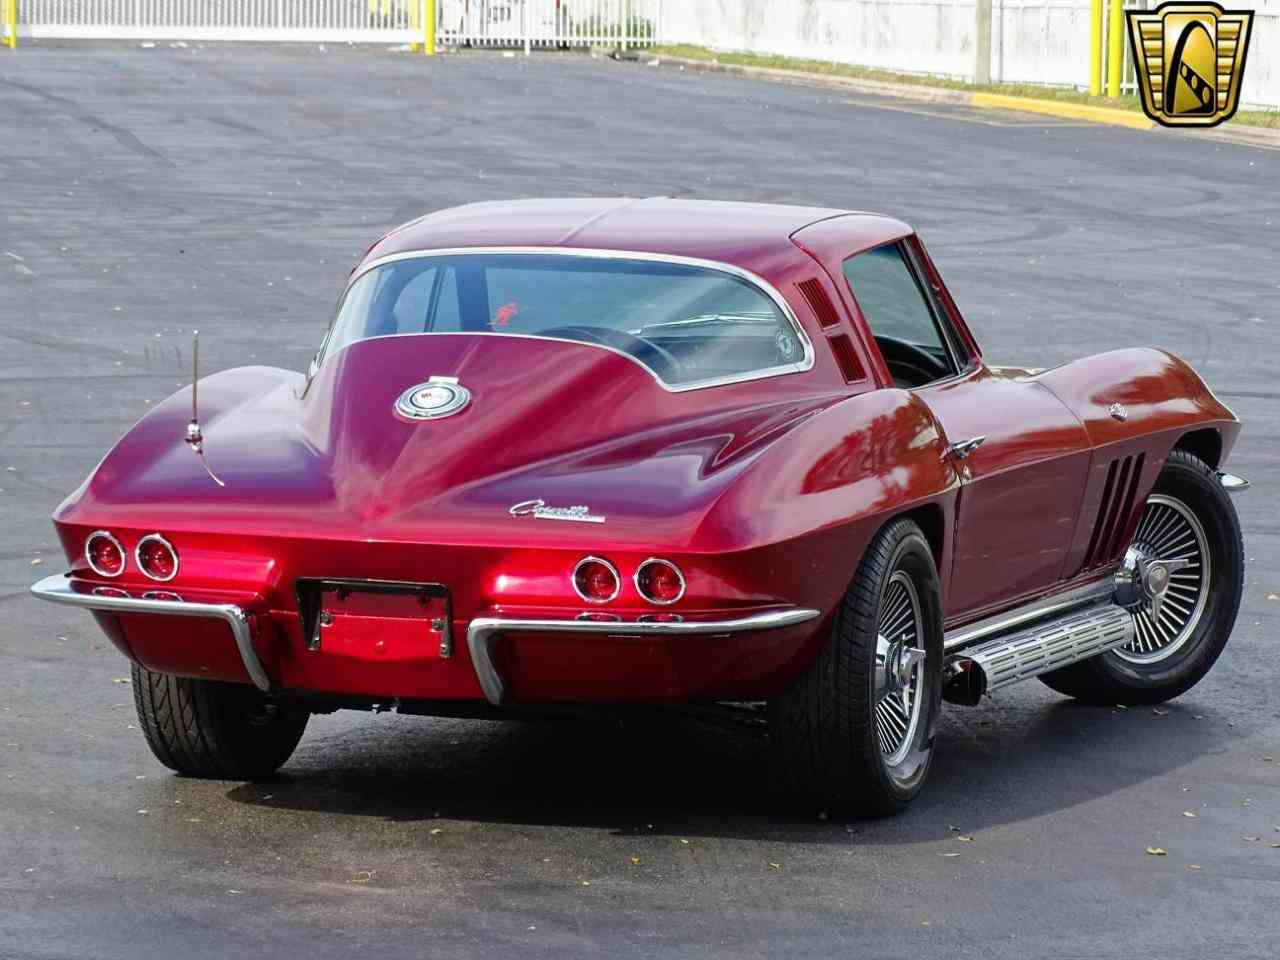 Large Picture of Classic 1965 Corvette located in Florida - $74,000.00 Offered by Gateway Classic Cars - Orlando - KKM4